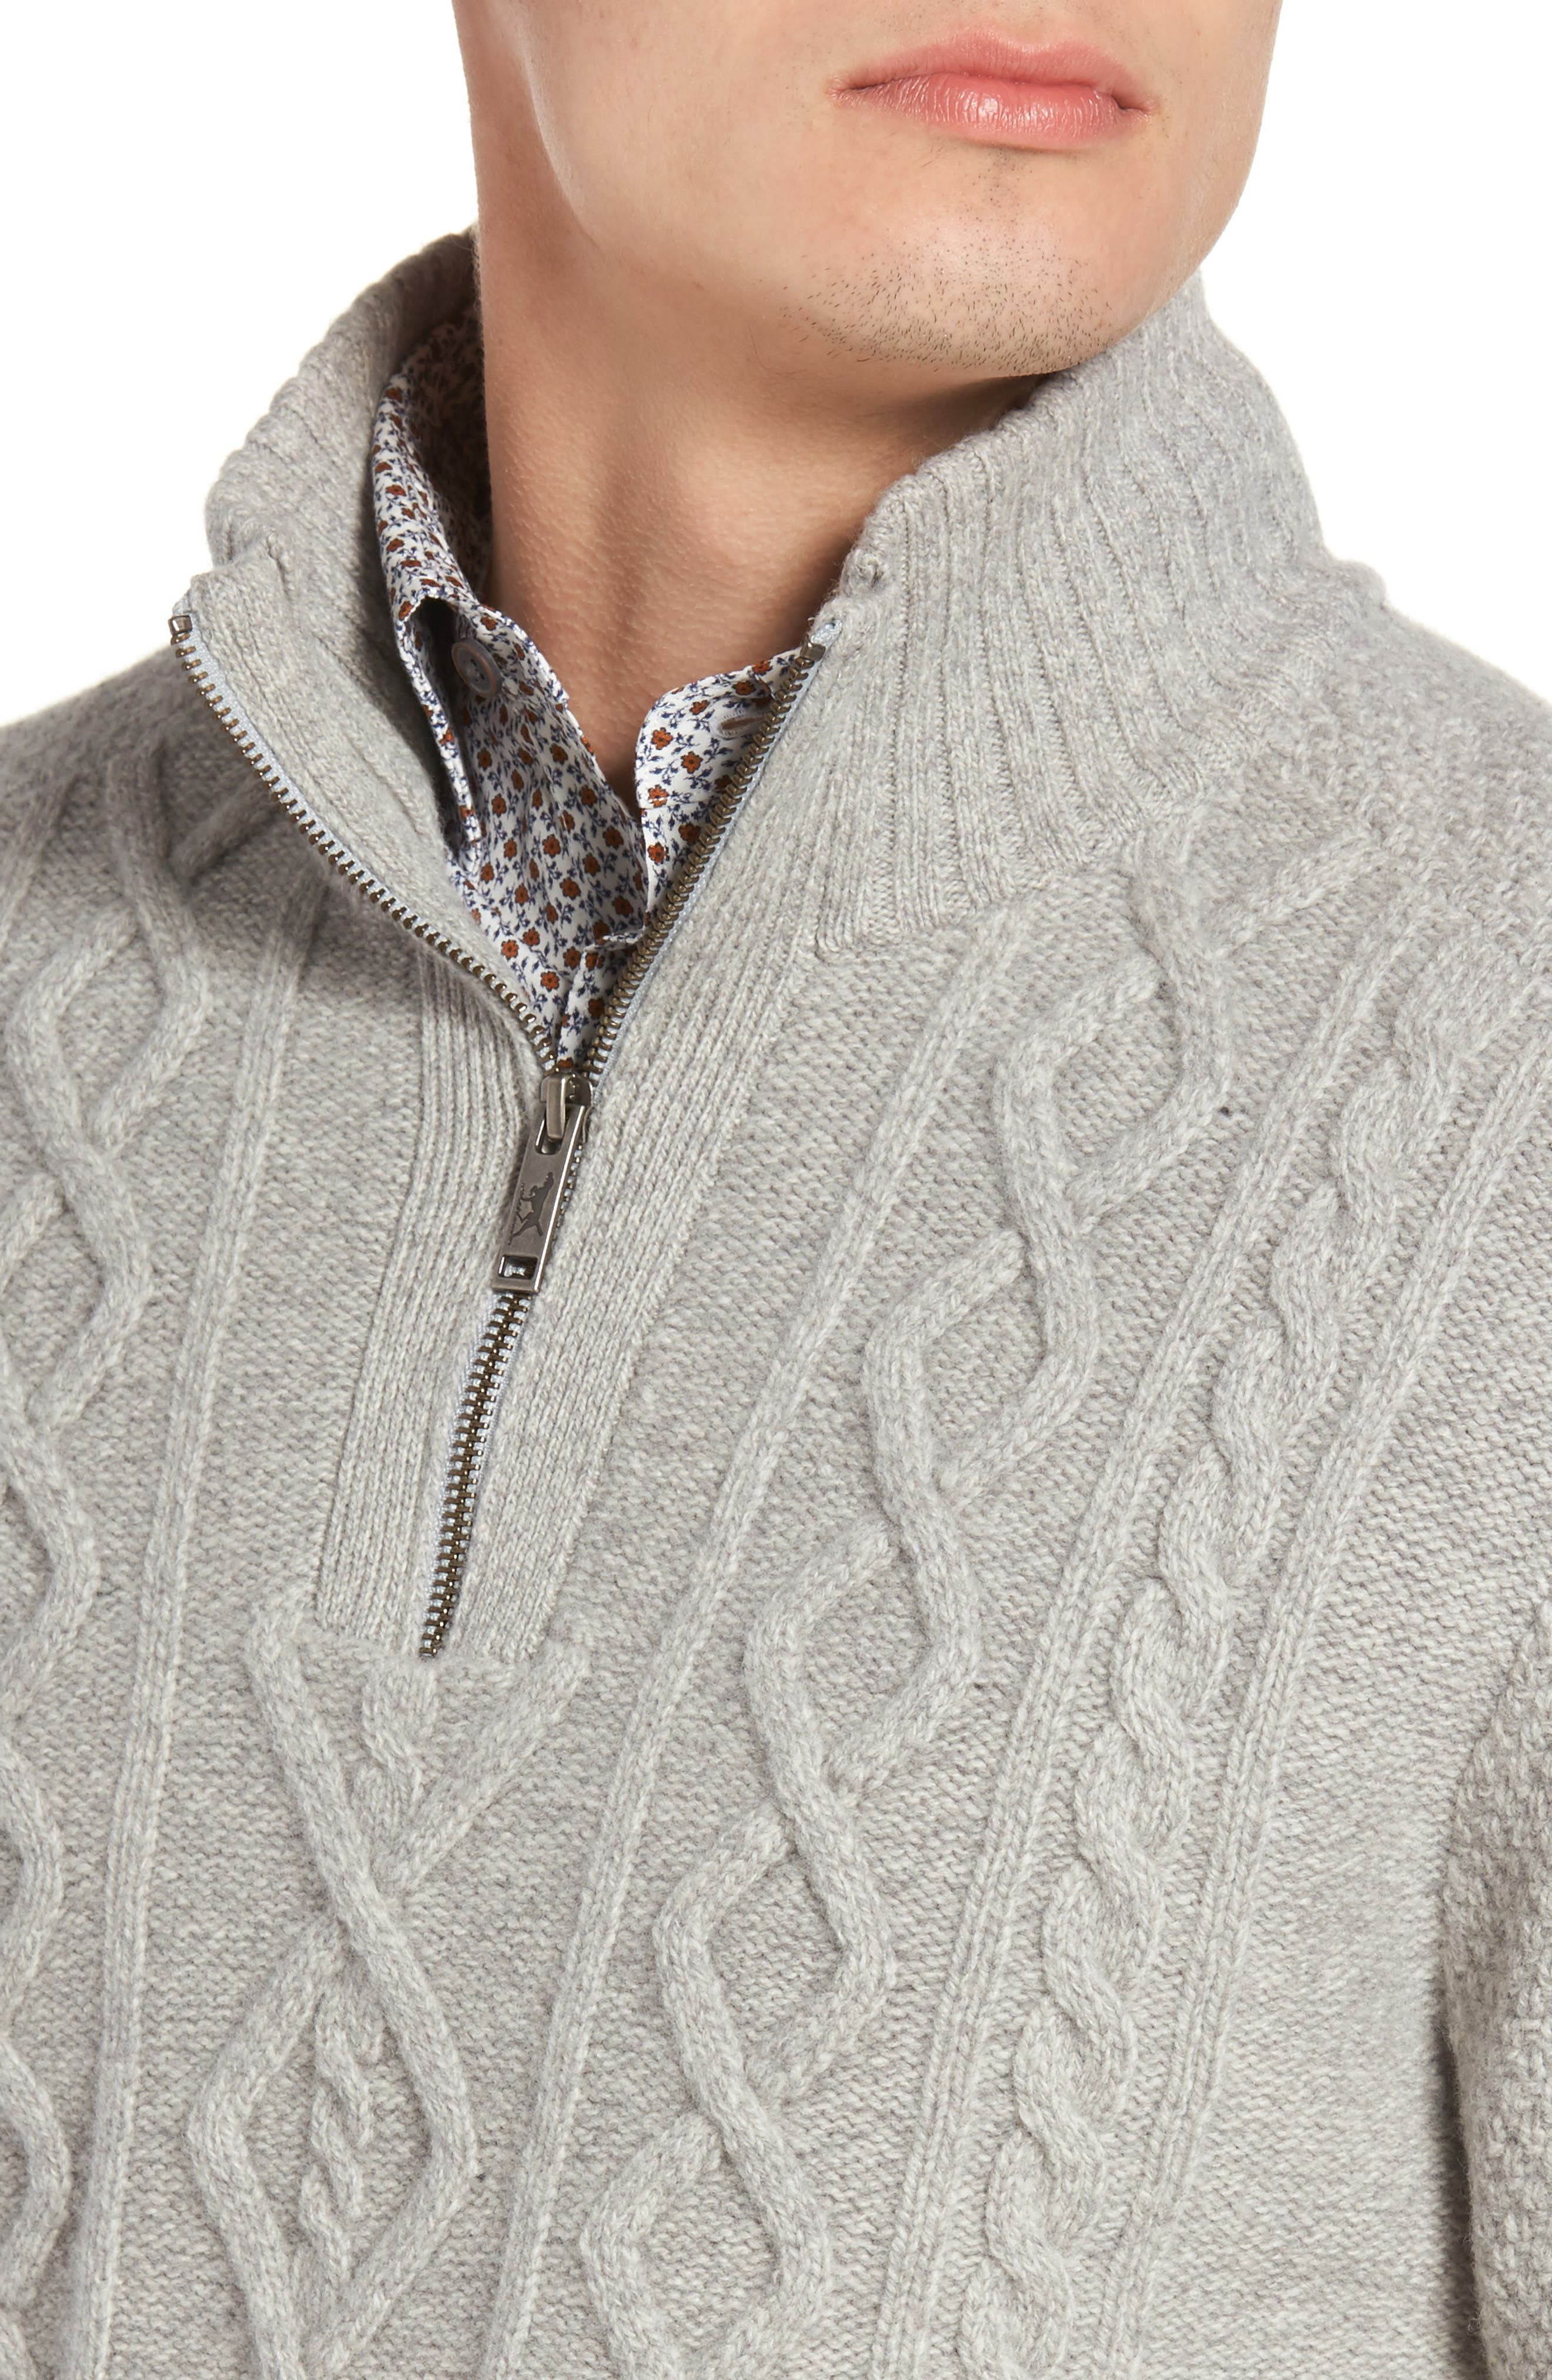 Cape Scoresby Wool Sweater,                             Alternate thumbnail 10, color,